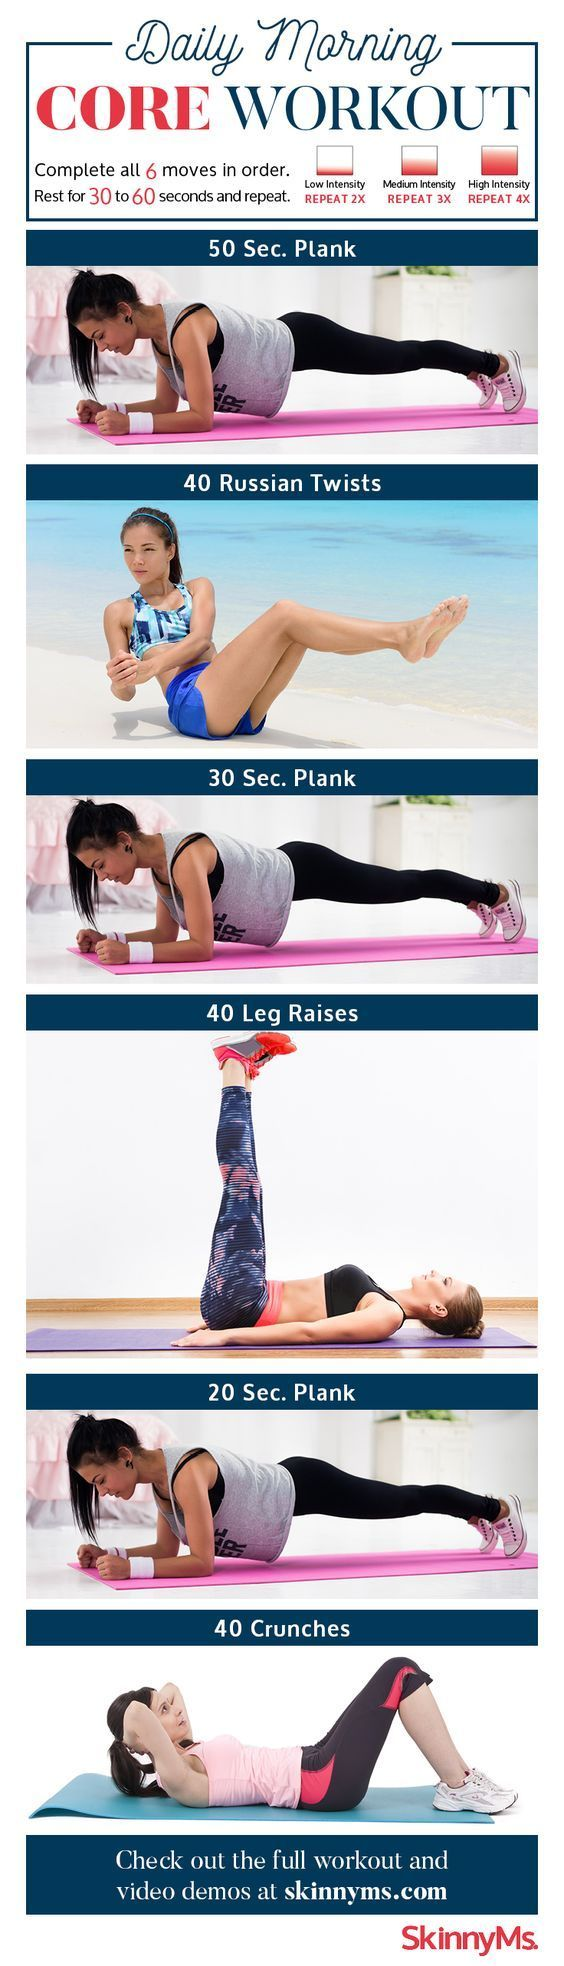 This Daily Morning Core Workout might be the best way to get out of bed! -workout http://skinnyms.com/ -fitness -skinnymsThis Daily Morning Core Workout might be the best way to get out of bed! -workout http:/